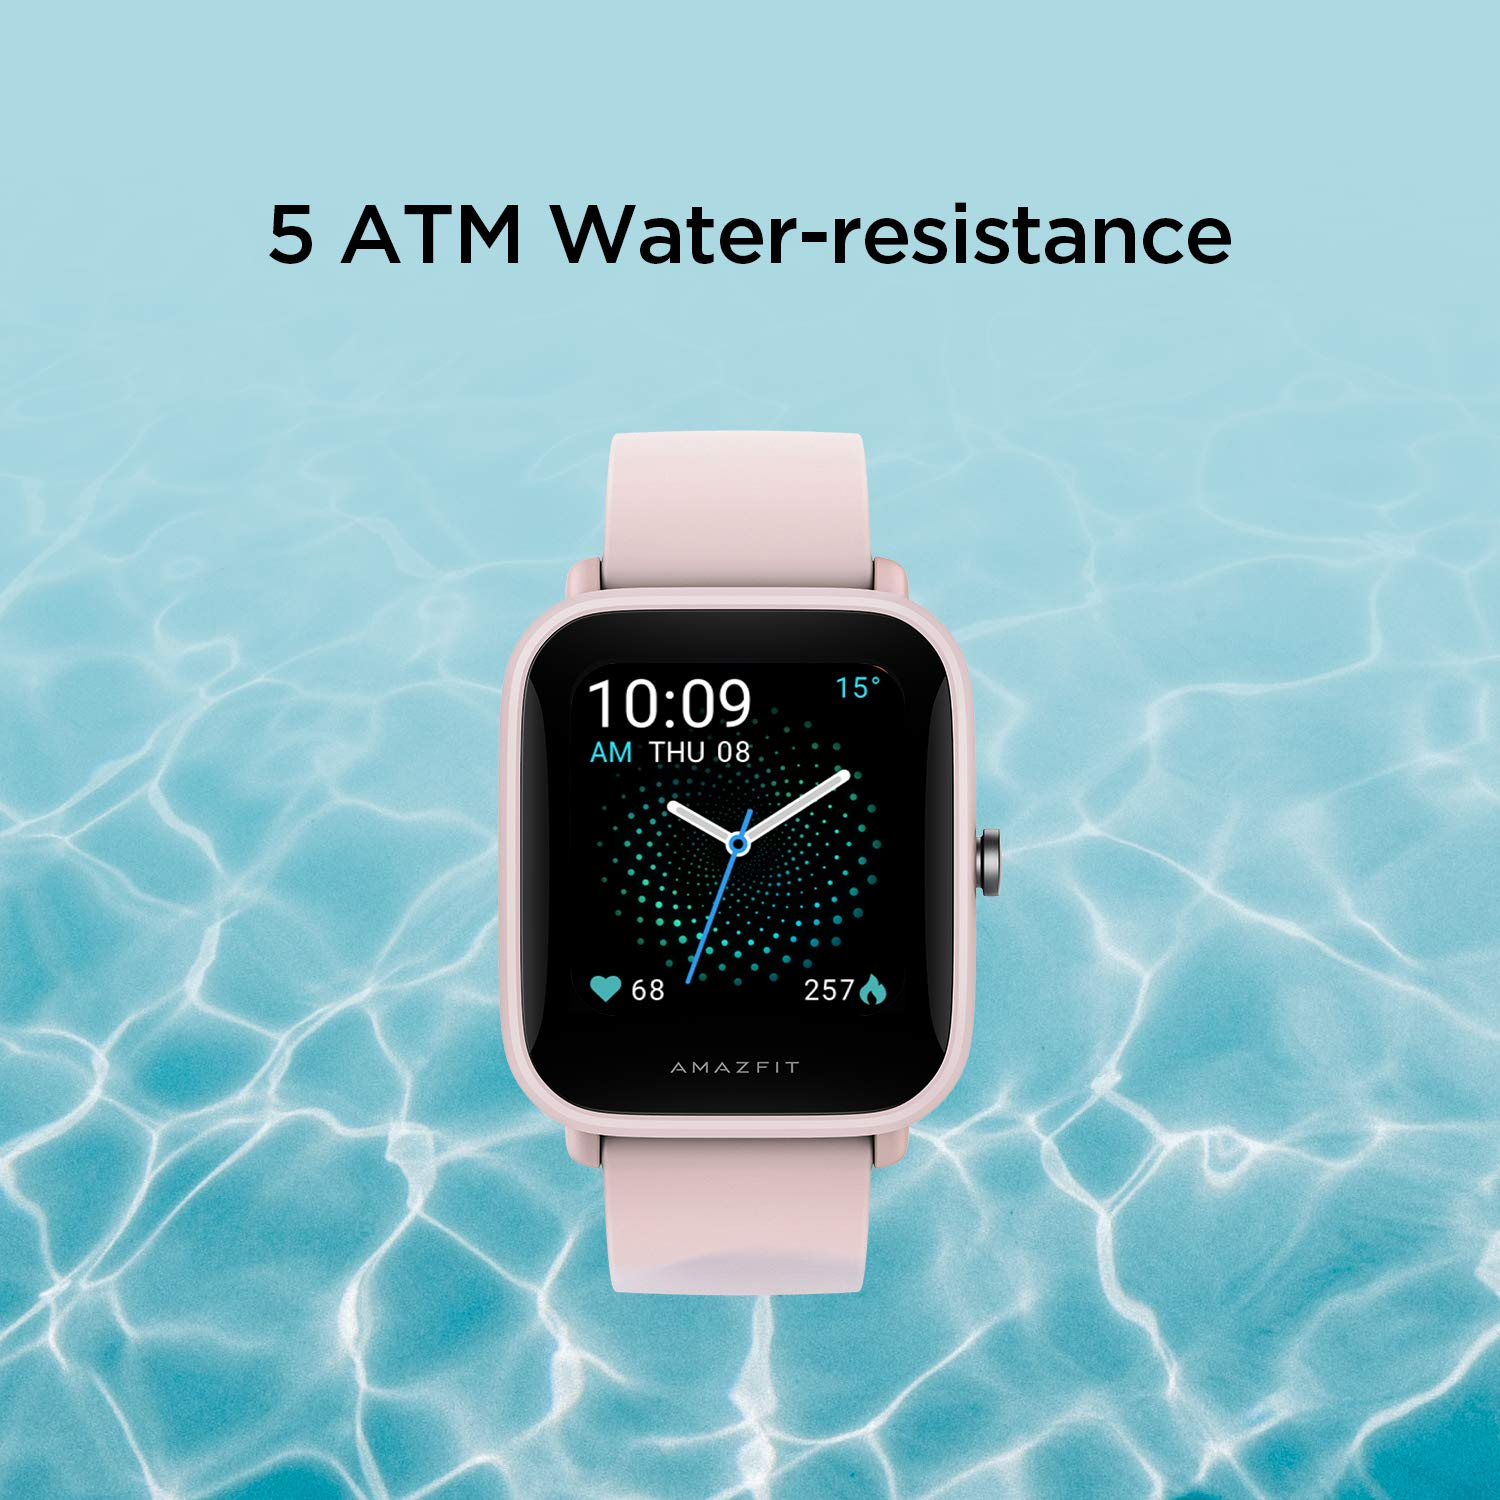 Amazfit Bip U Smart Watch Fitness Tracker for Men Women with 60+ Sports Modes, 9-Day Battery Life, Blood Oxygen Breathing Heart Rate Sleep Monitor, 5 ATM Waterproof, for iPhone Android Phone (Pink)